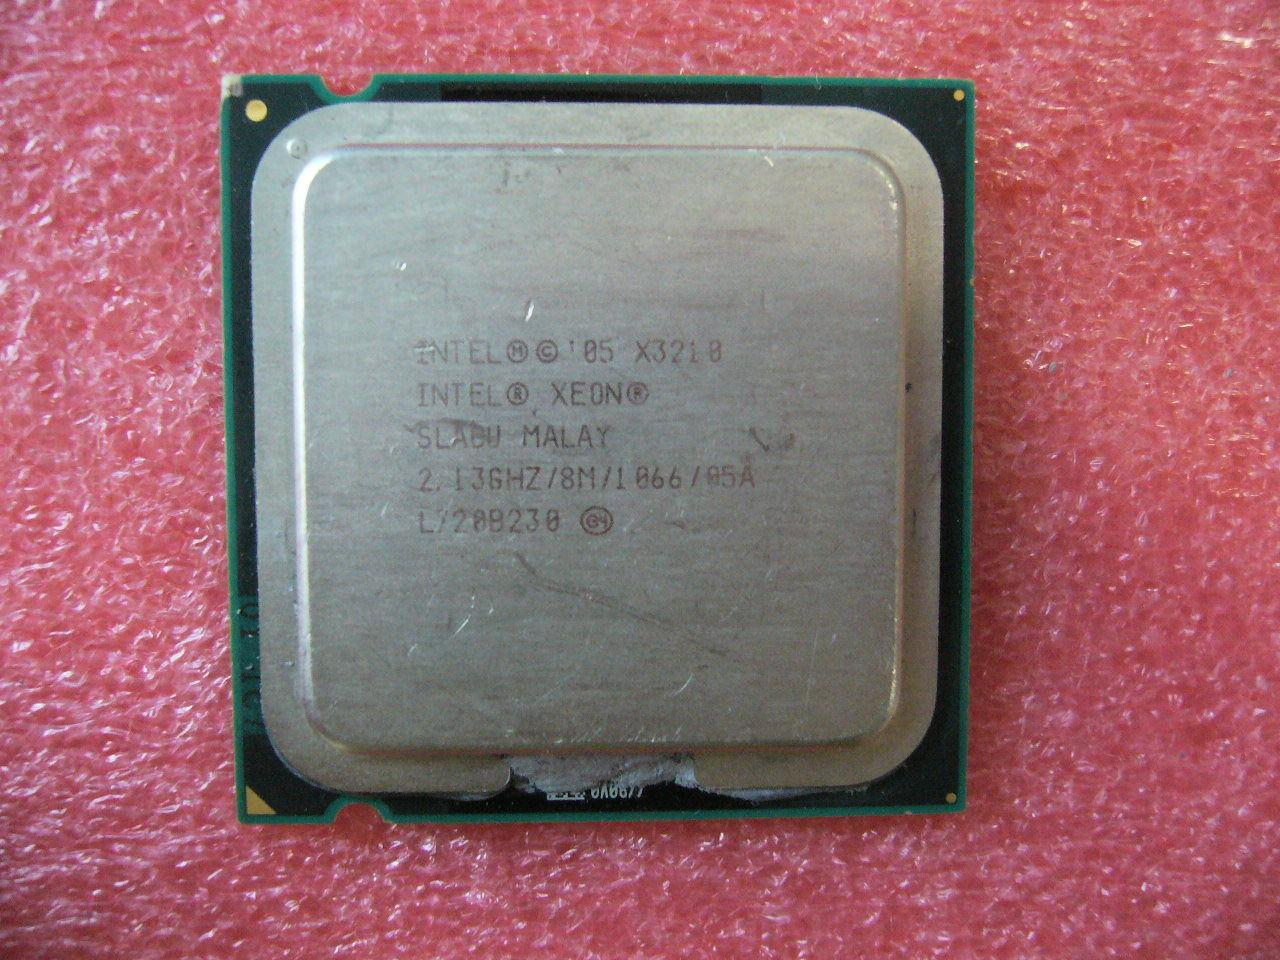 Intel Xeon X3210 2.13 GHz Quad-Core CPU Processor SLACU LGA 775